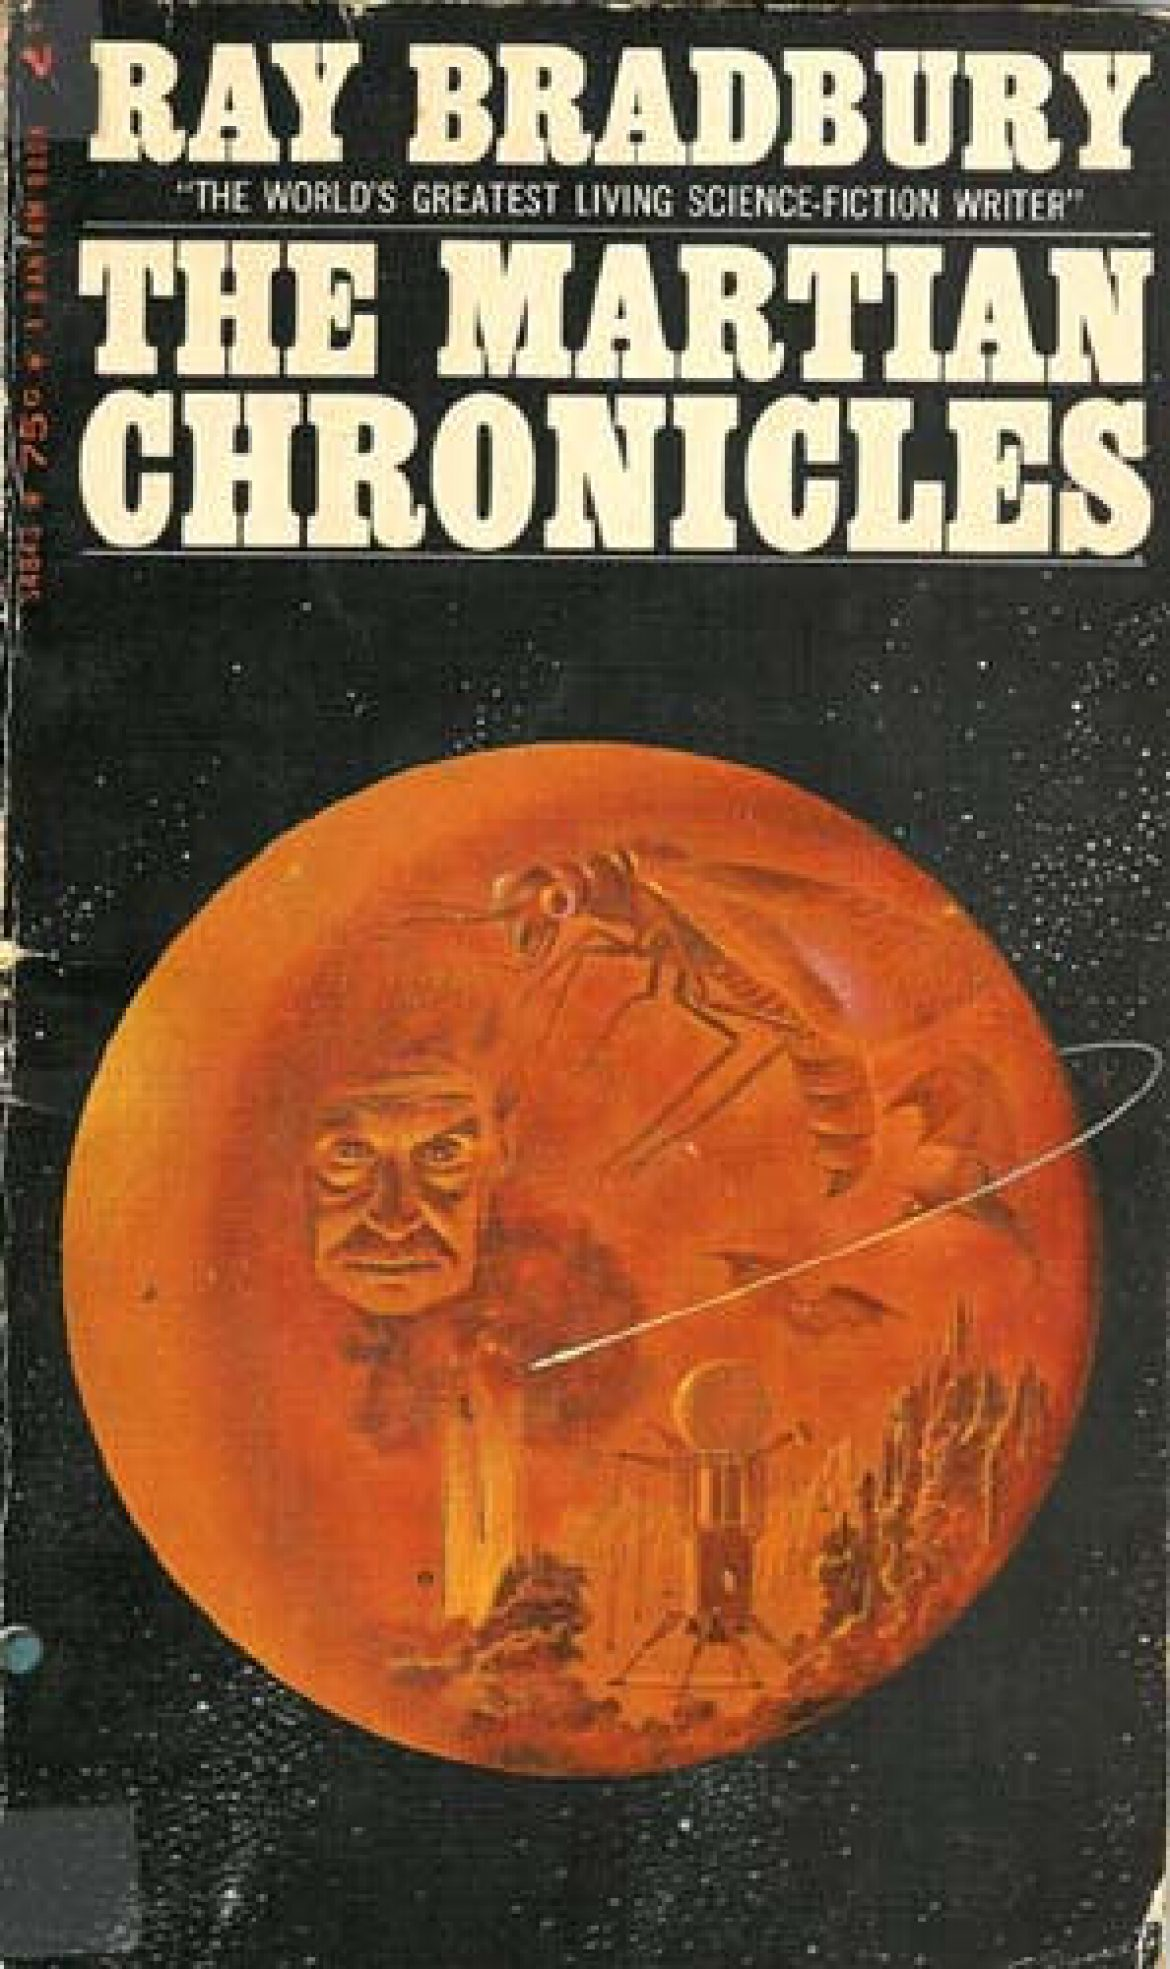 the memories of childhood in the work of ray bradbury a science fiction writer I love science fiction but ray bradbury goes beyond the genre to frame subtle human experiences within the first few pages of each story, i am gifted with engaging conversations and palatable details.